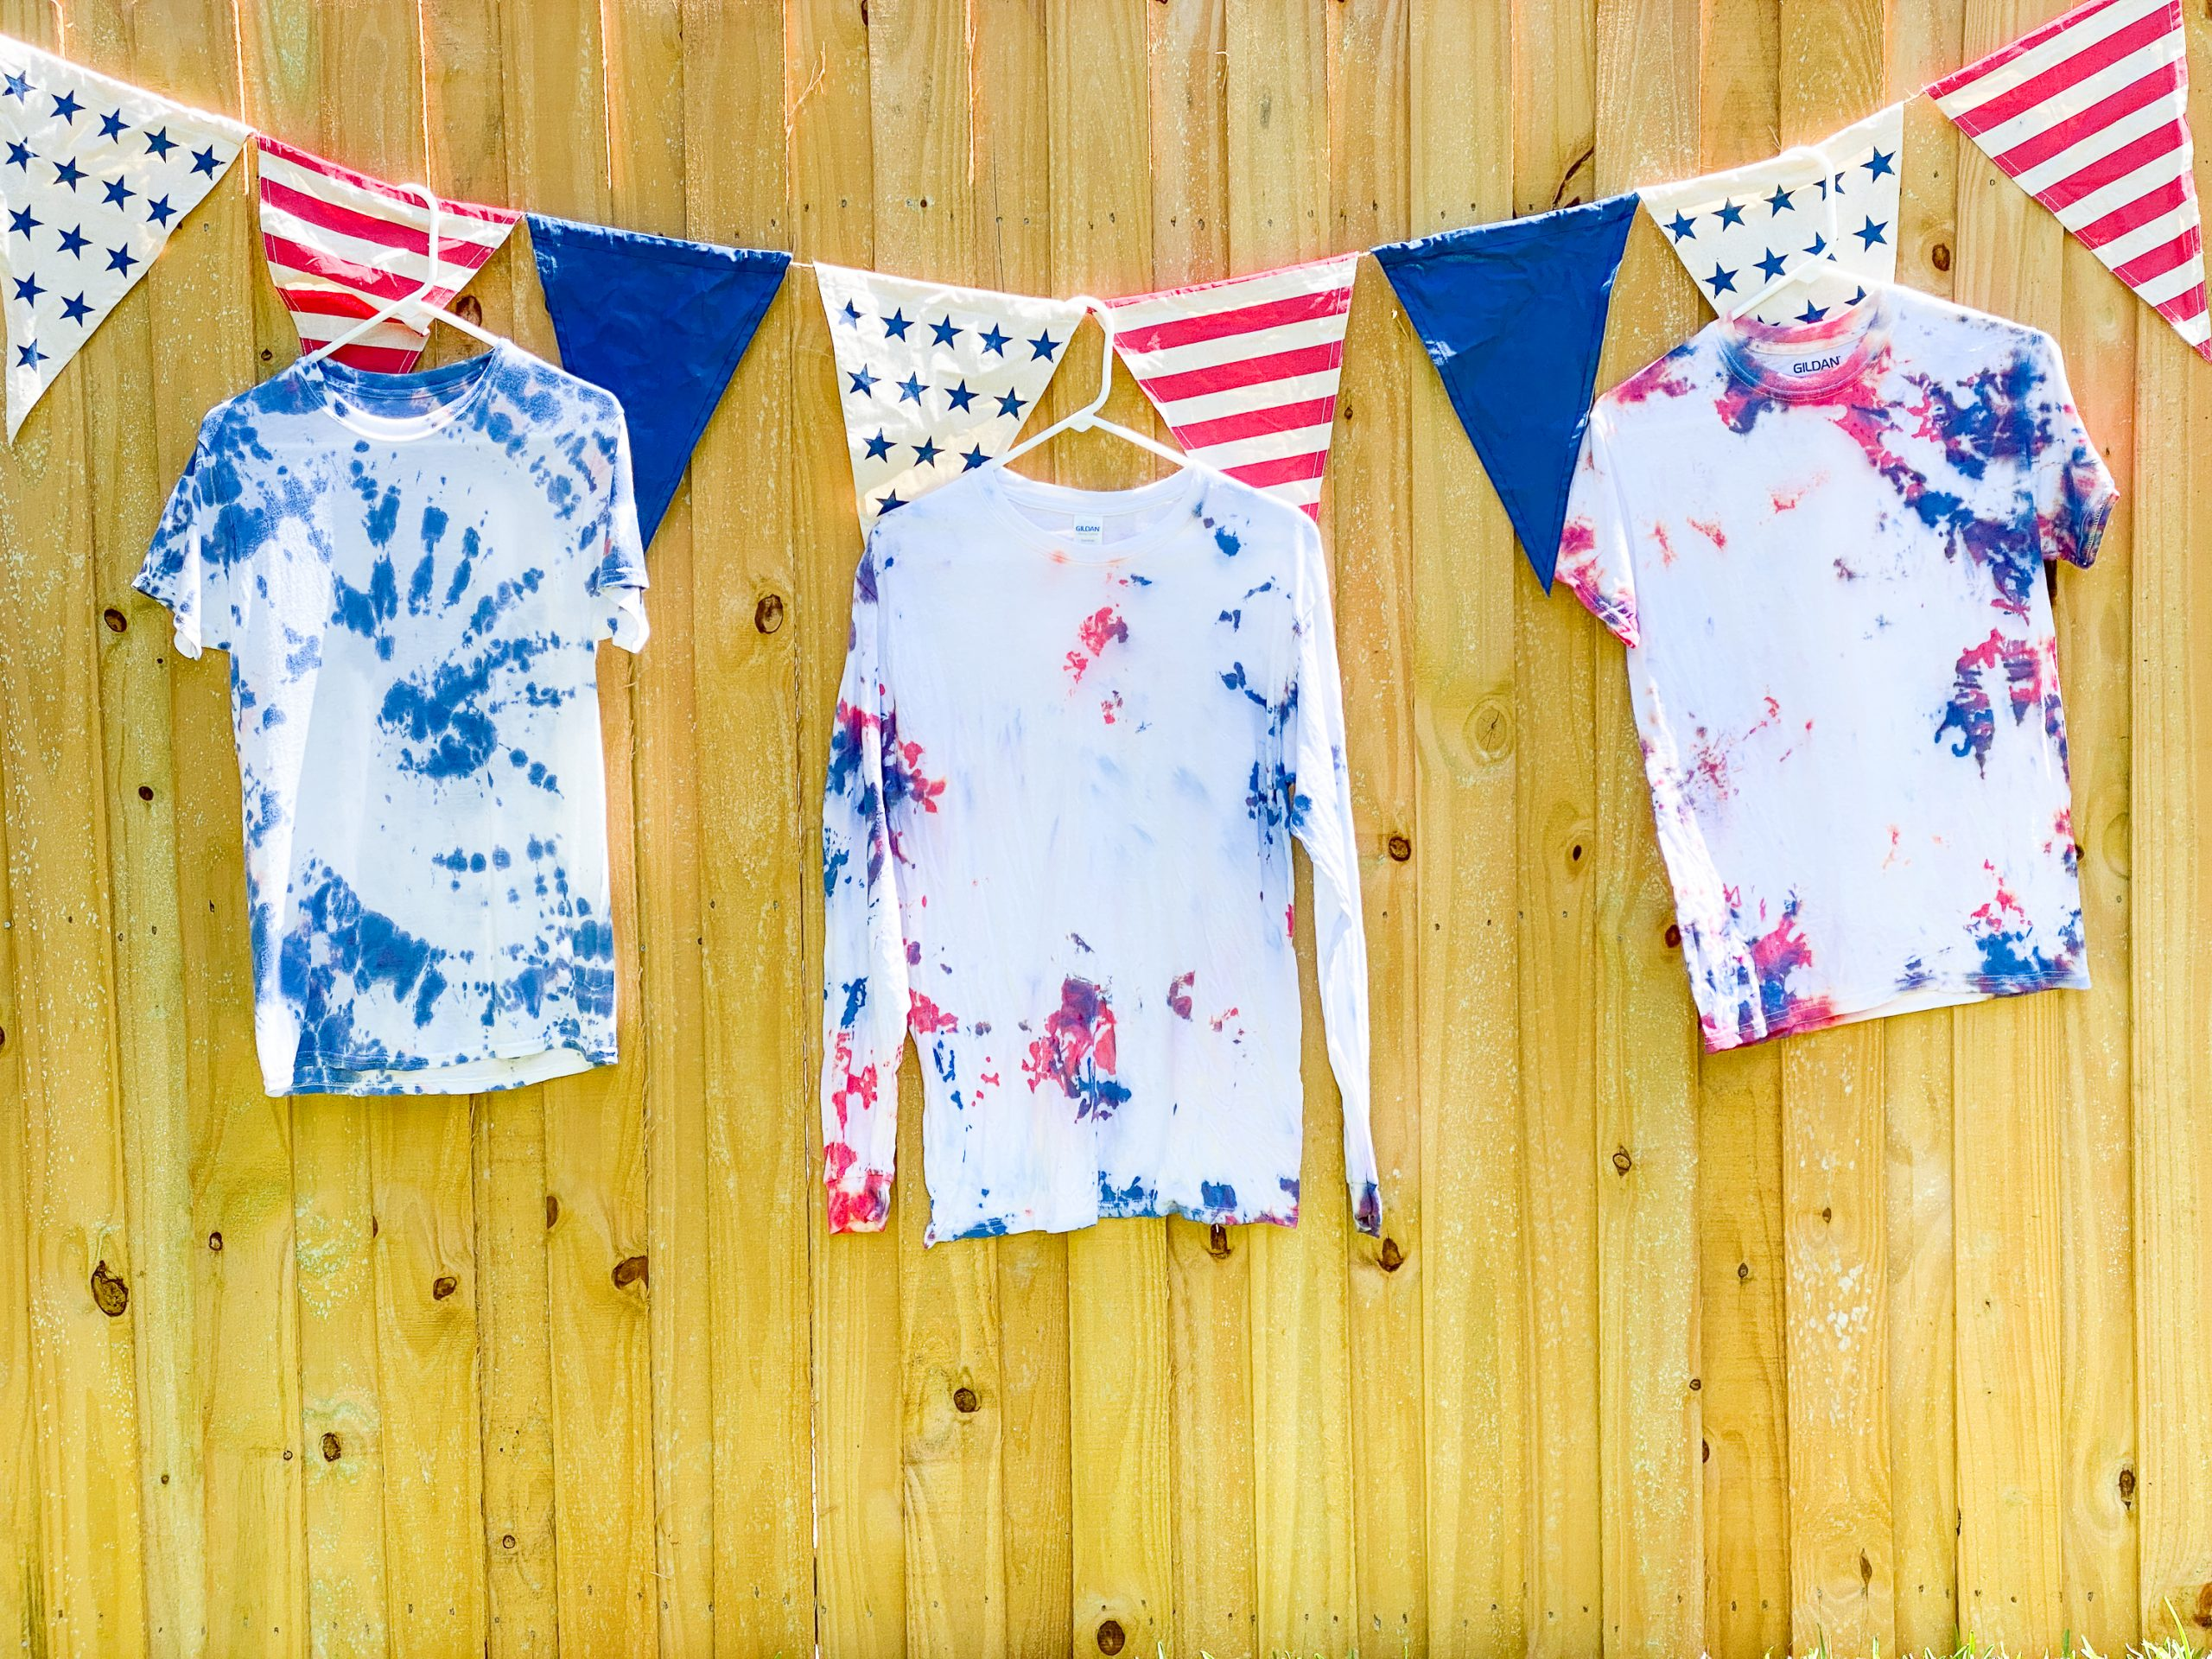 Red White and Blue Tie Dye DIY